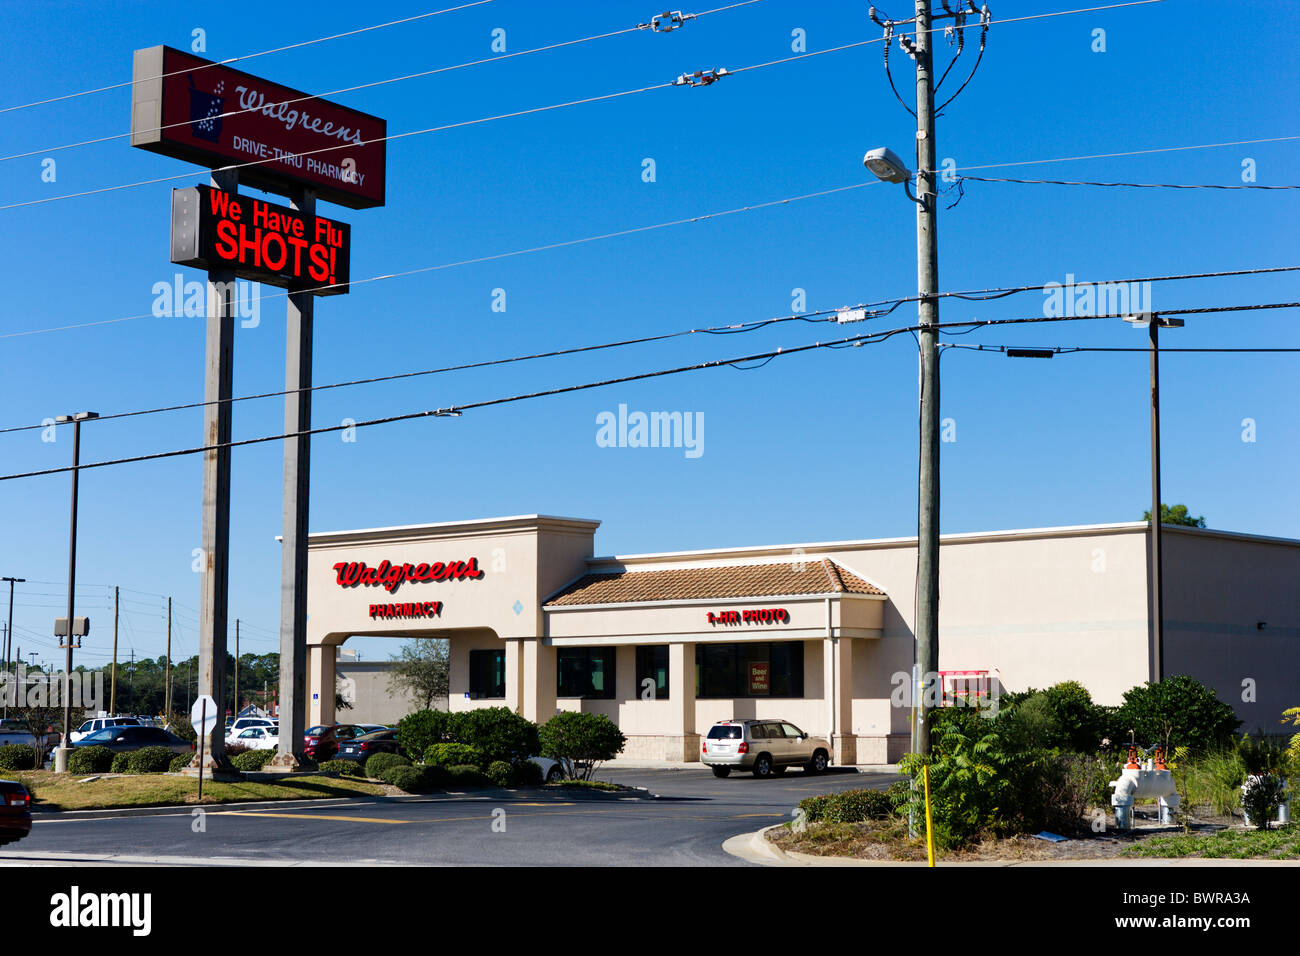 Walgreens Store High Resolution Stock Photography And Images Alamy